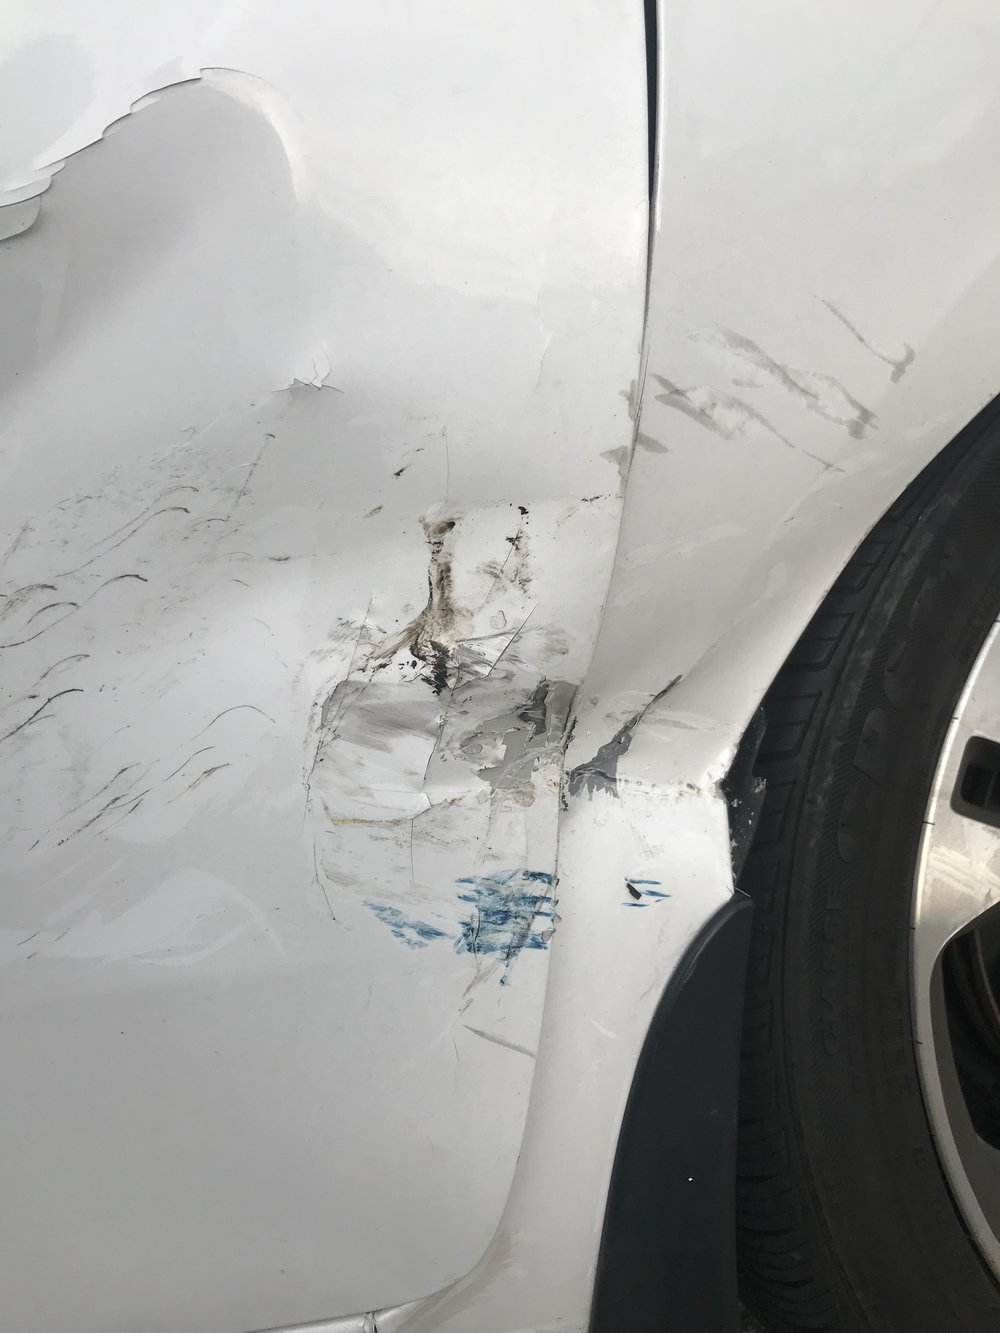 I was unable to open my passenger door due to the impact